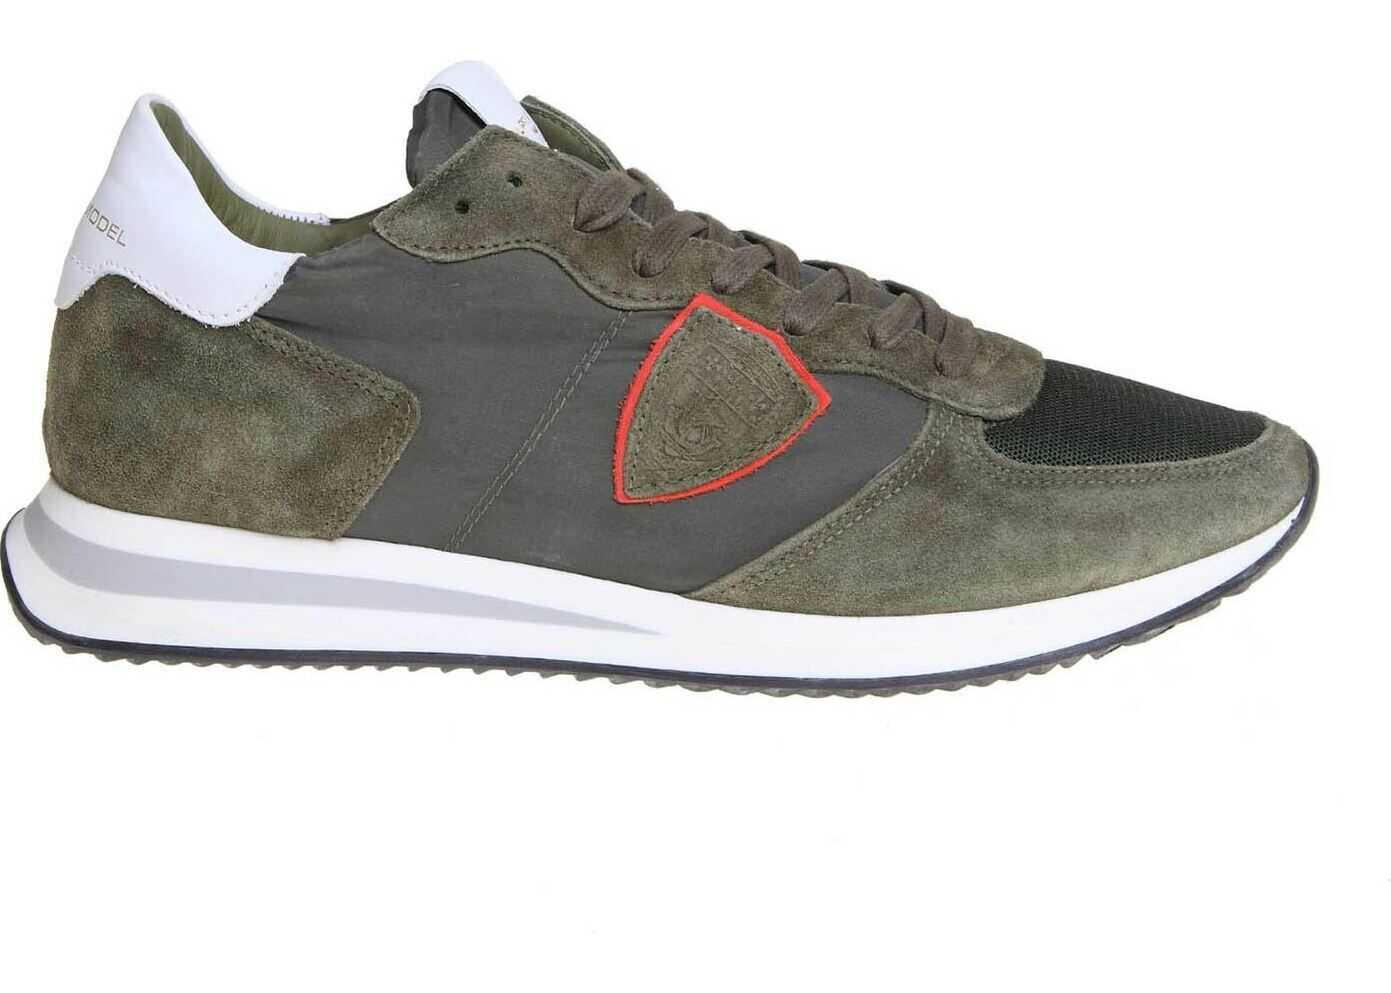 Philippe Model Trpx Sneakers In Army Green Green